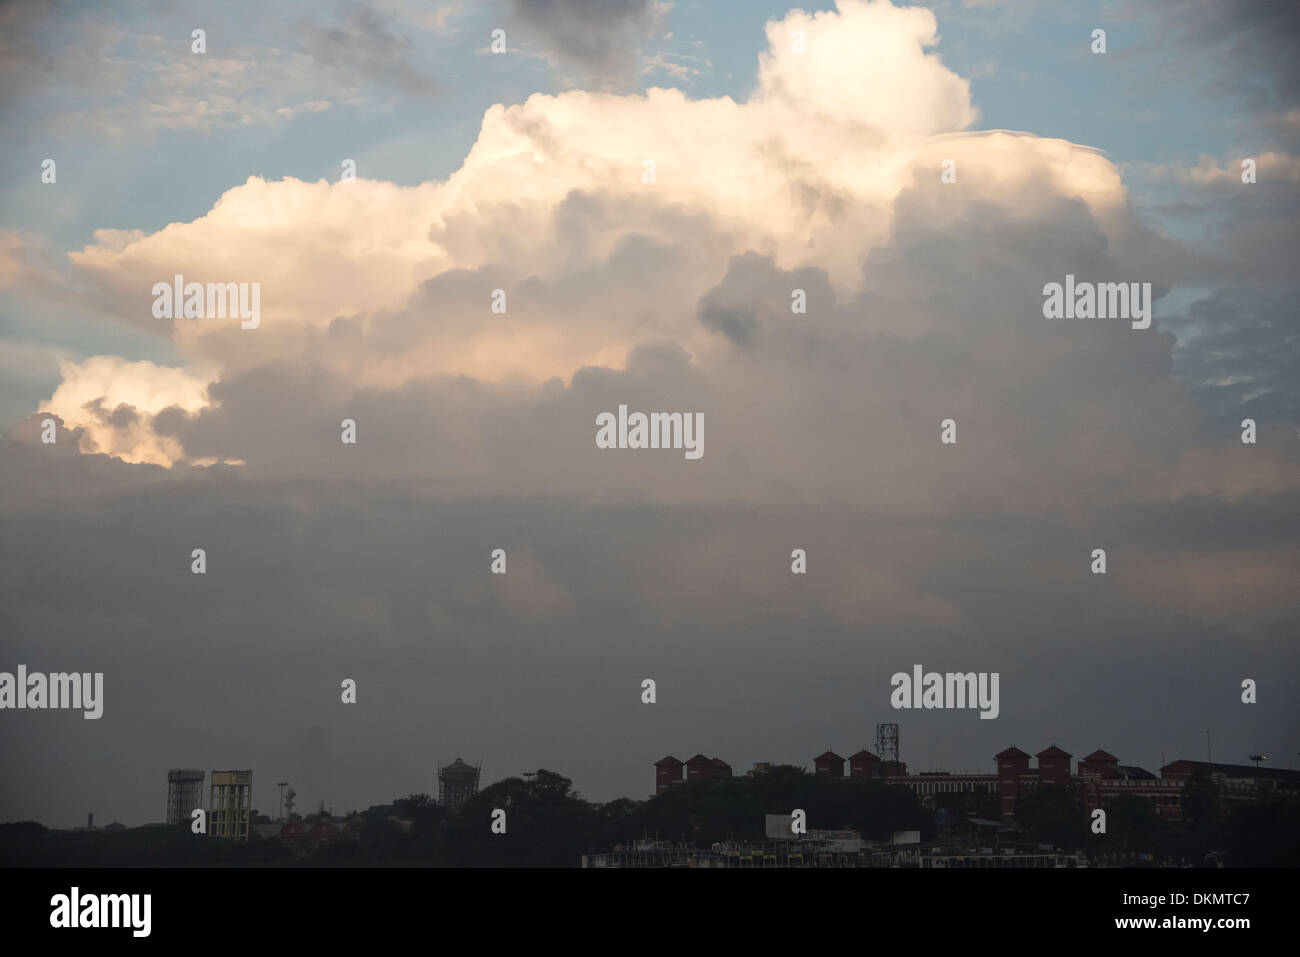 Howrah Rail Station building under cloud cover. - Stock Image